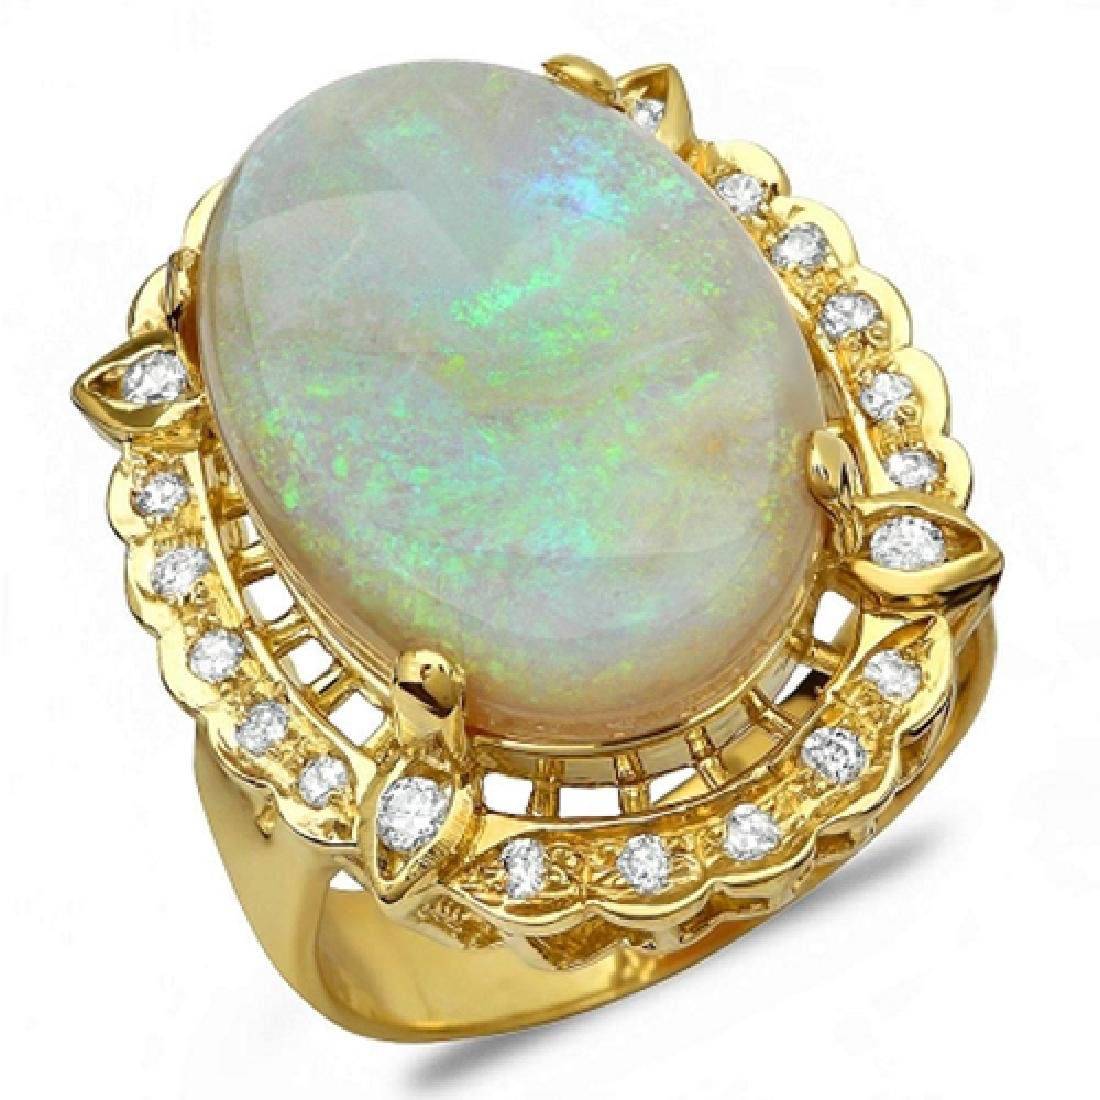 12.38 Carat Natural Opal 18K Solid Yellow Gold Diamond